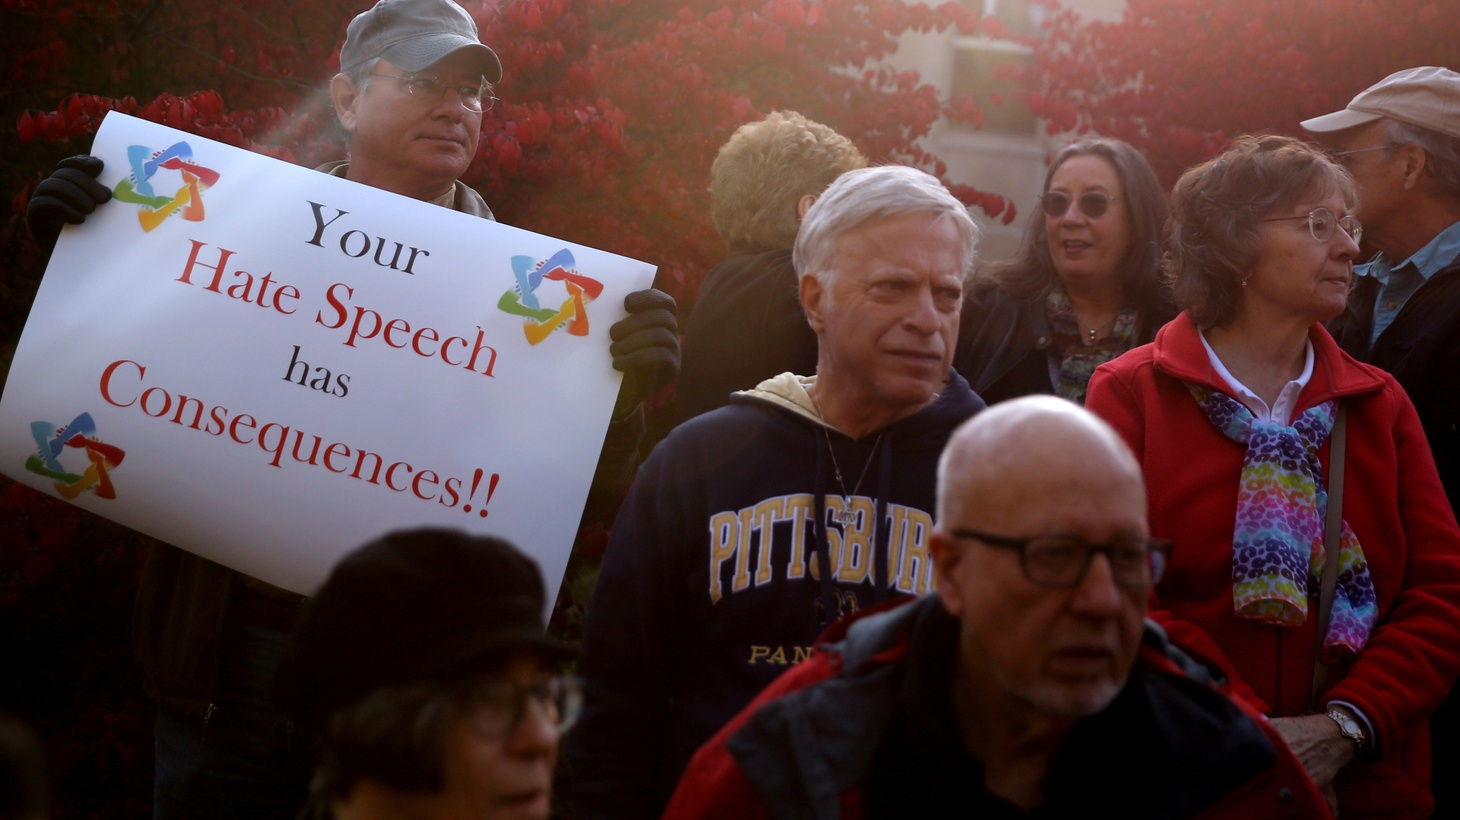 During a visit to Pittsburgh to honor the victims of an anti-Semitic attack, President Trump was met with protests. The president has ridiculed Democrats targeted with pipe bombs and deployed troops against Central American asylum seekers.